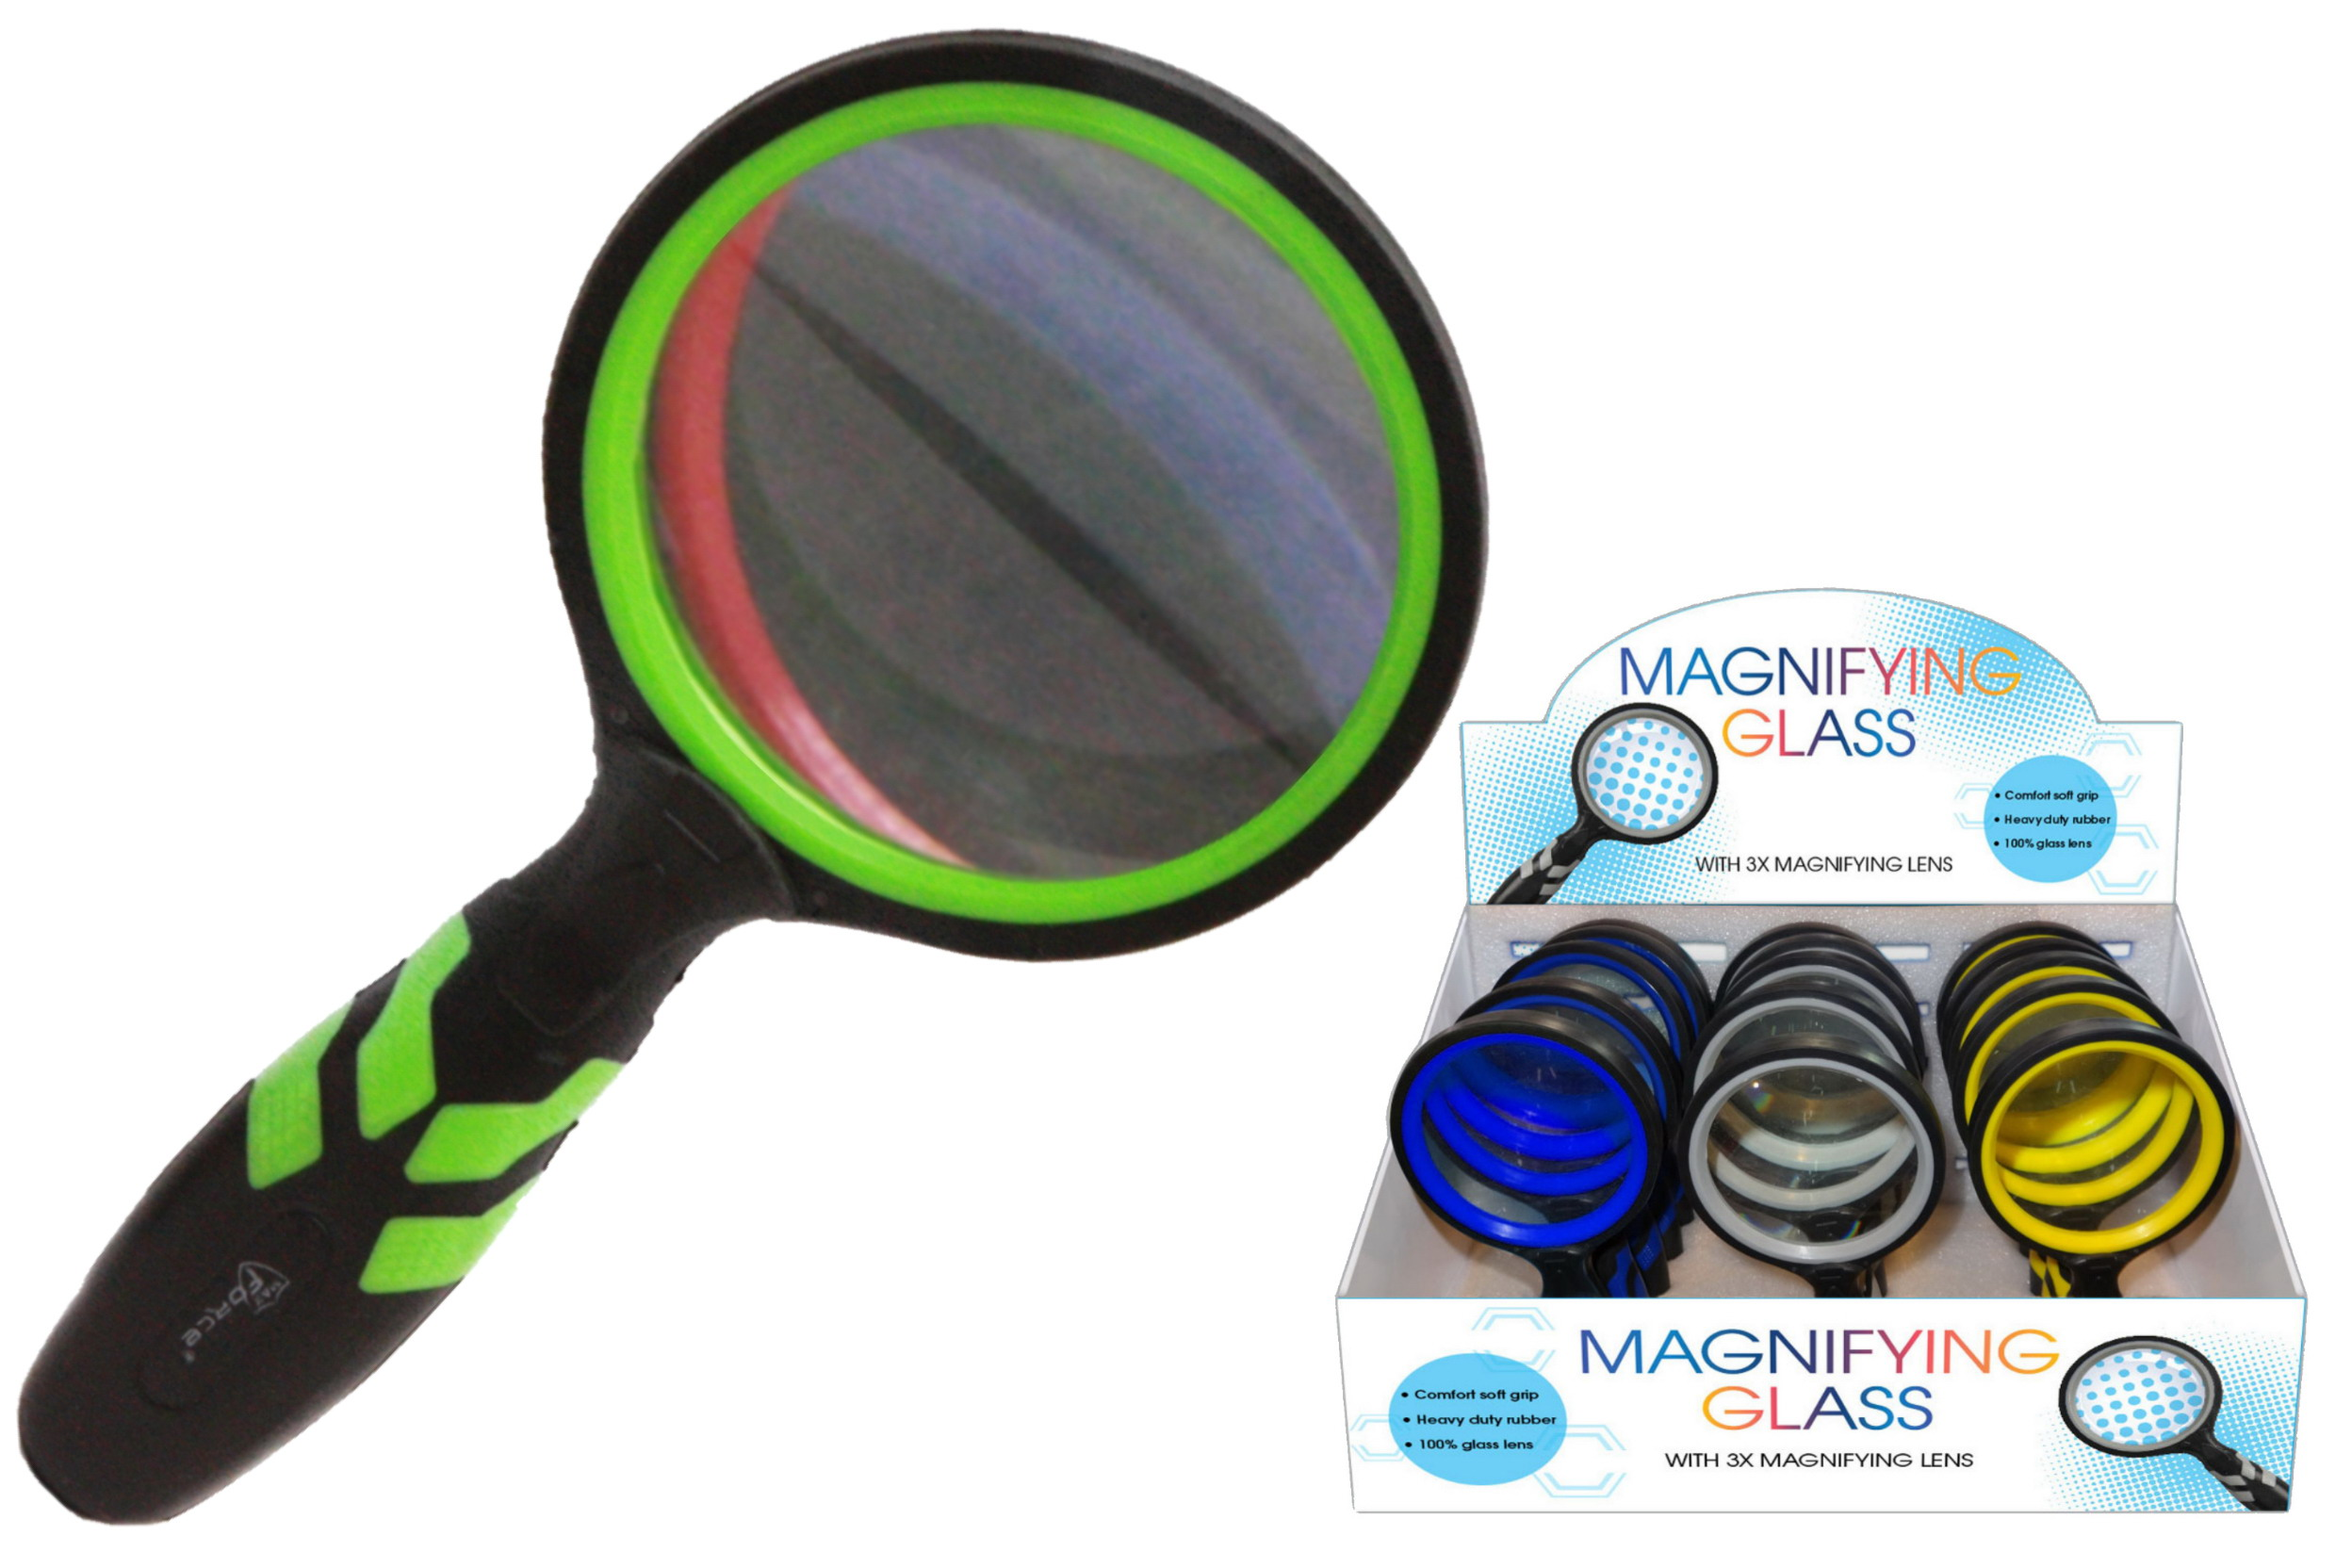 Magnifying Glass With 3x Magnifying Lens In Display Box